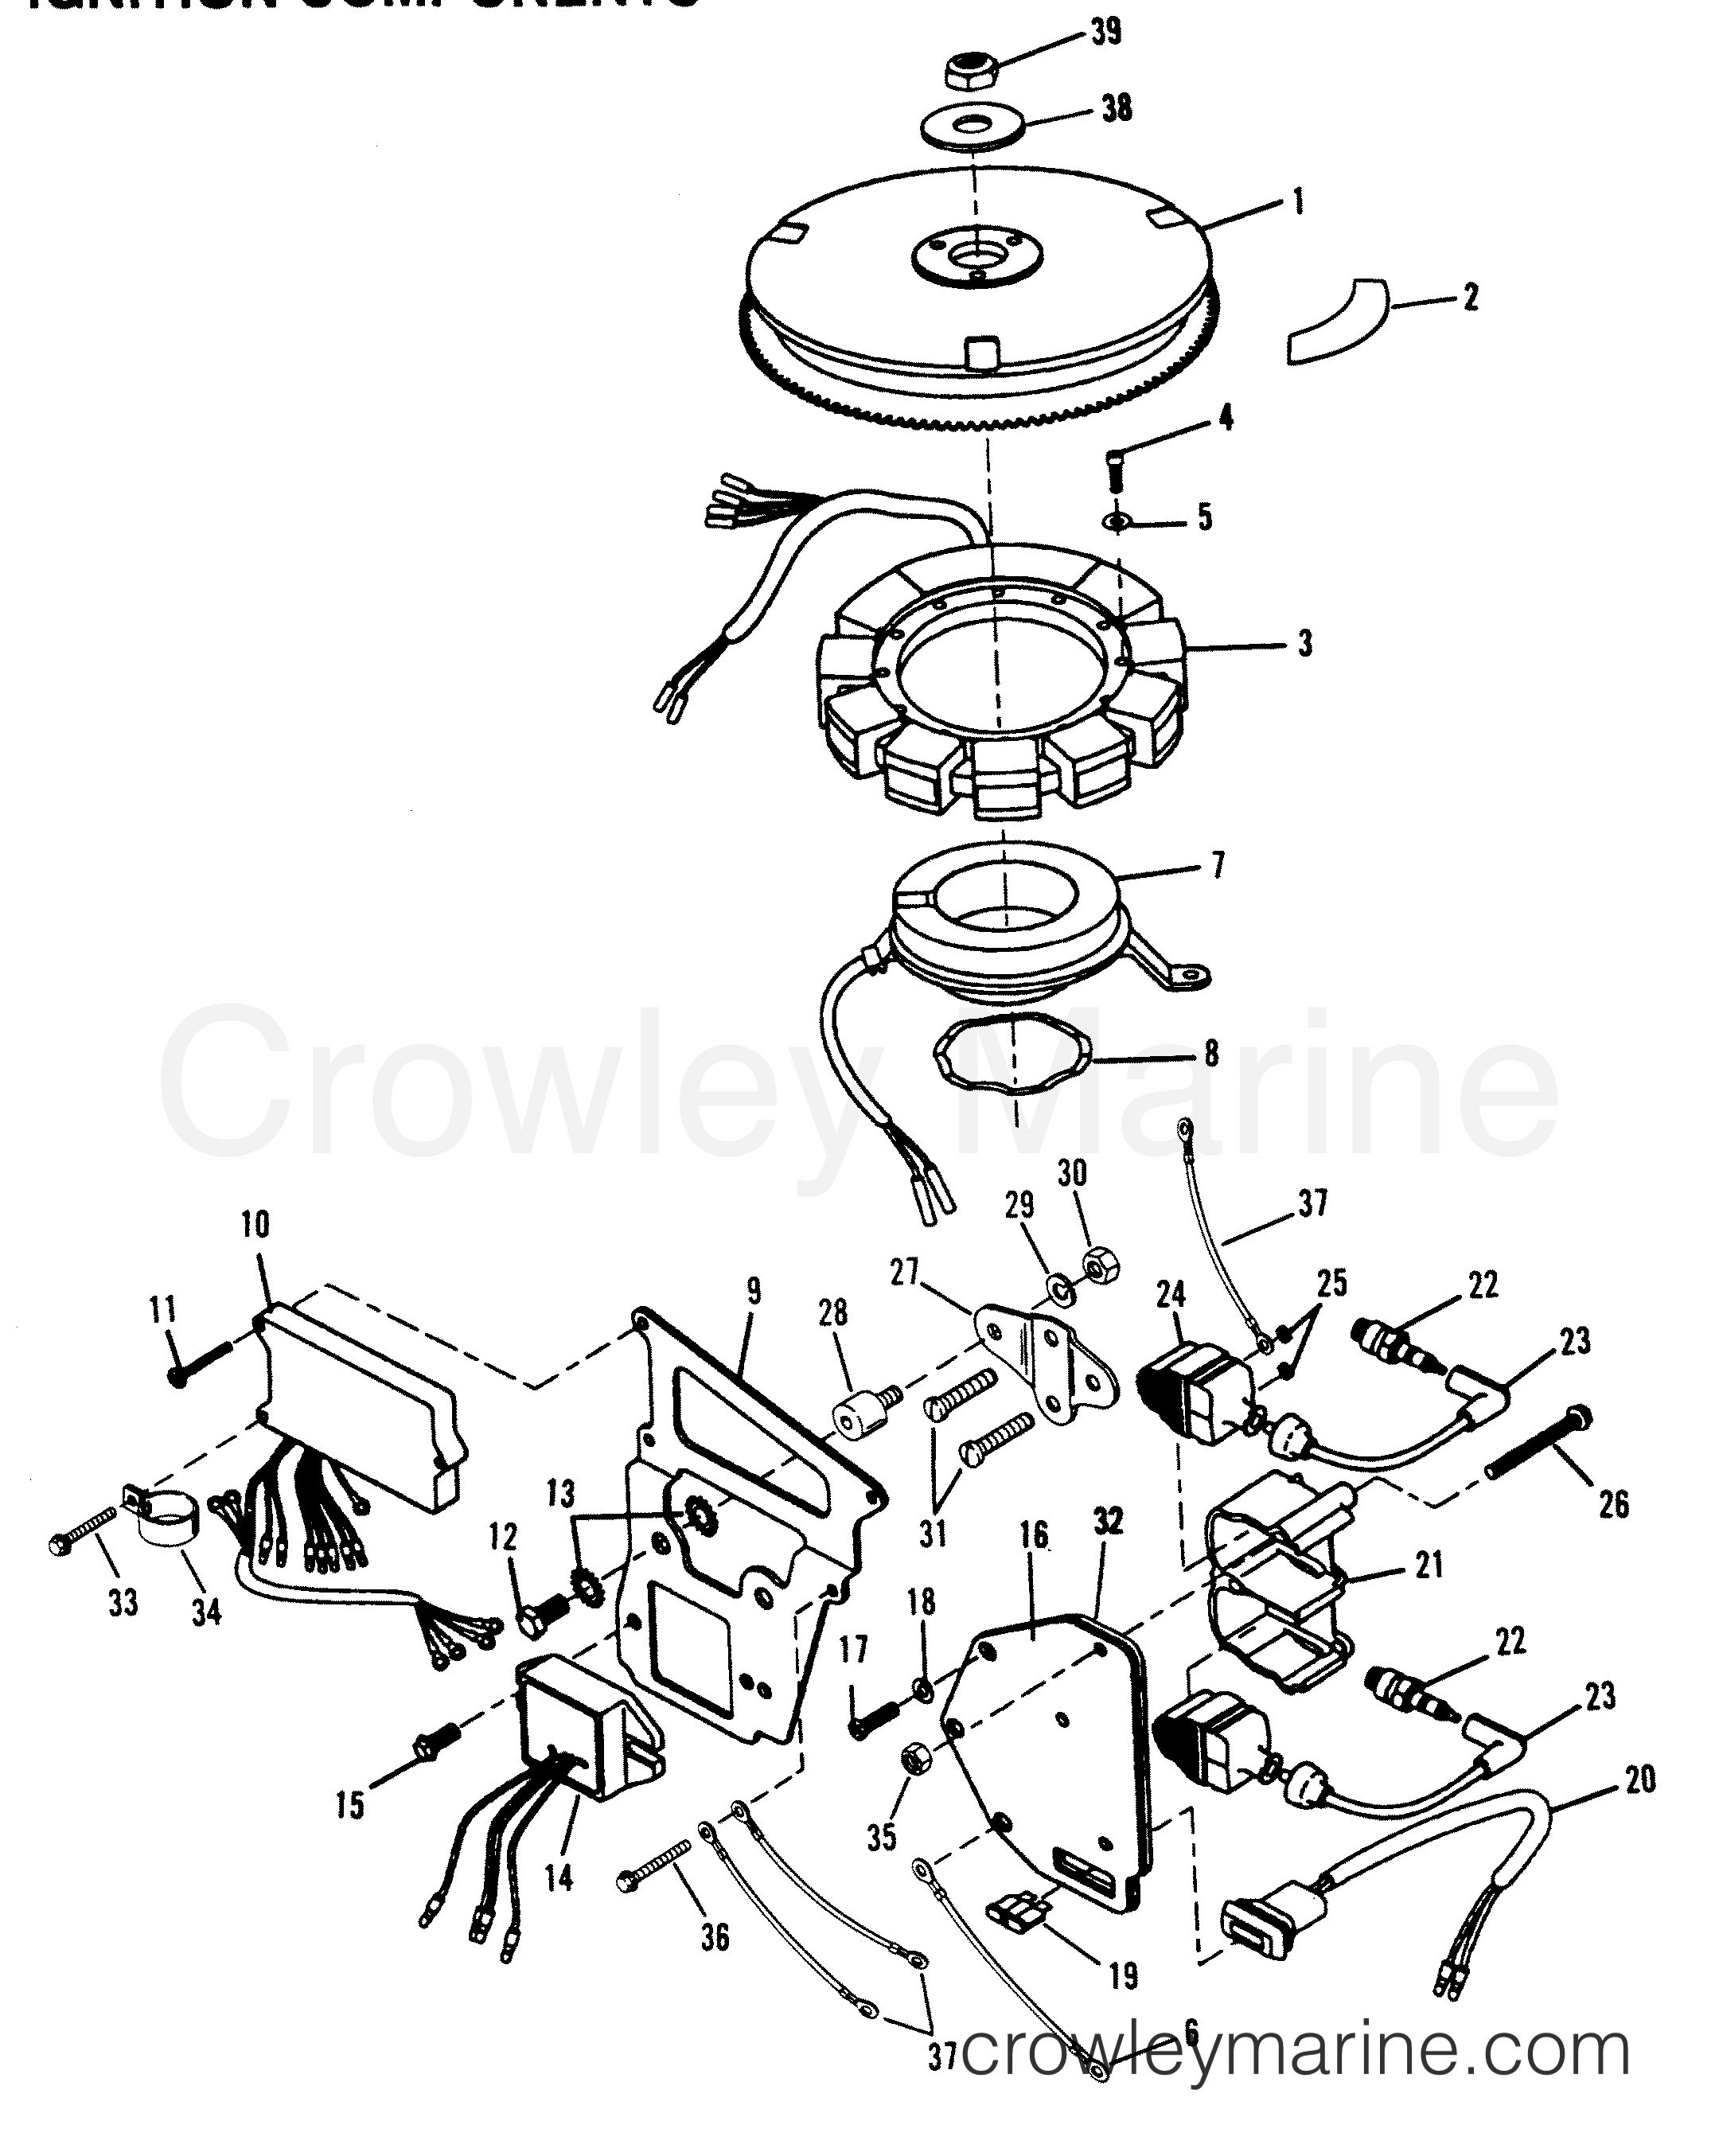 Ignition Components Outboard Mercury Outboard Crowley